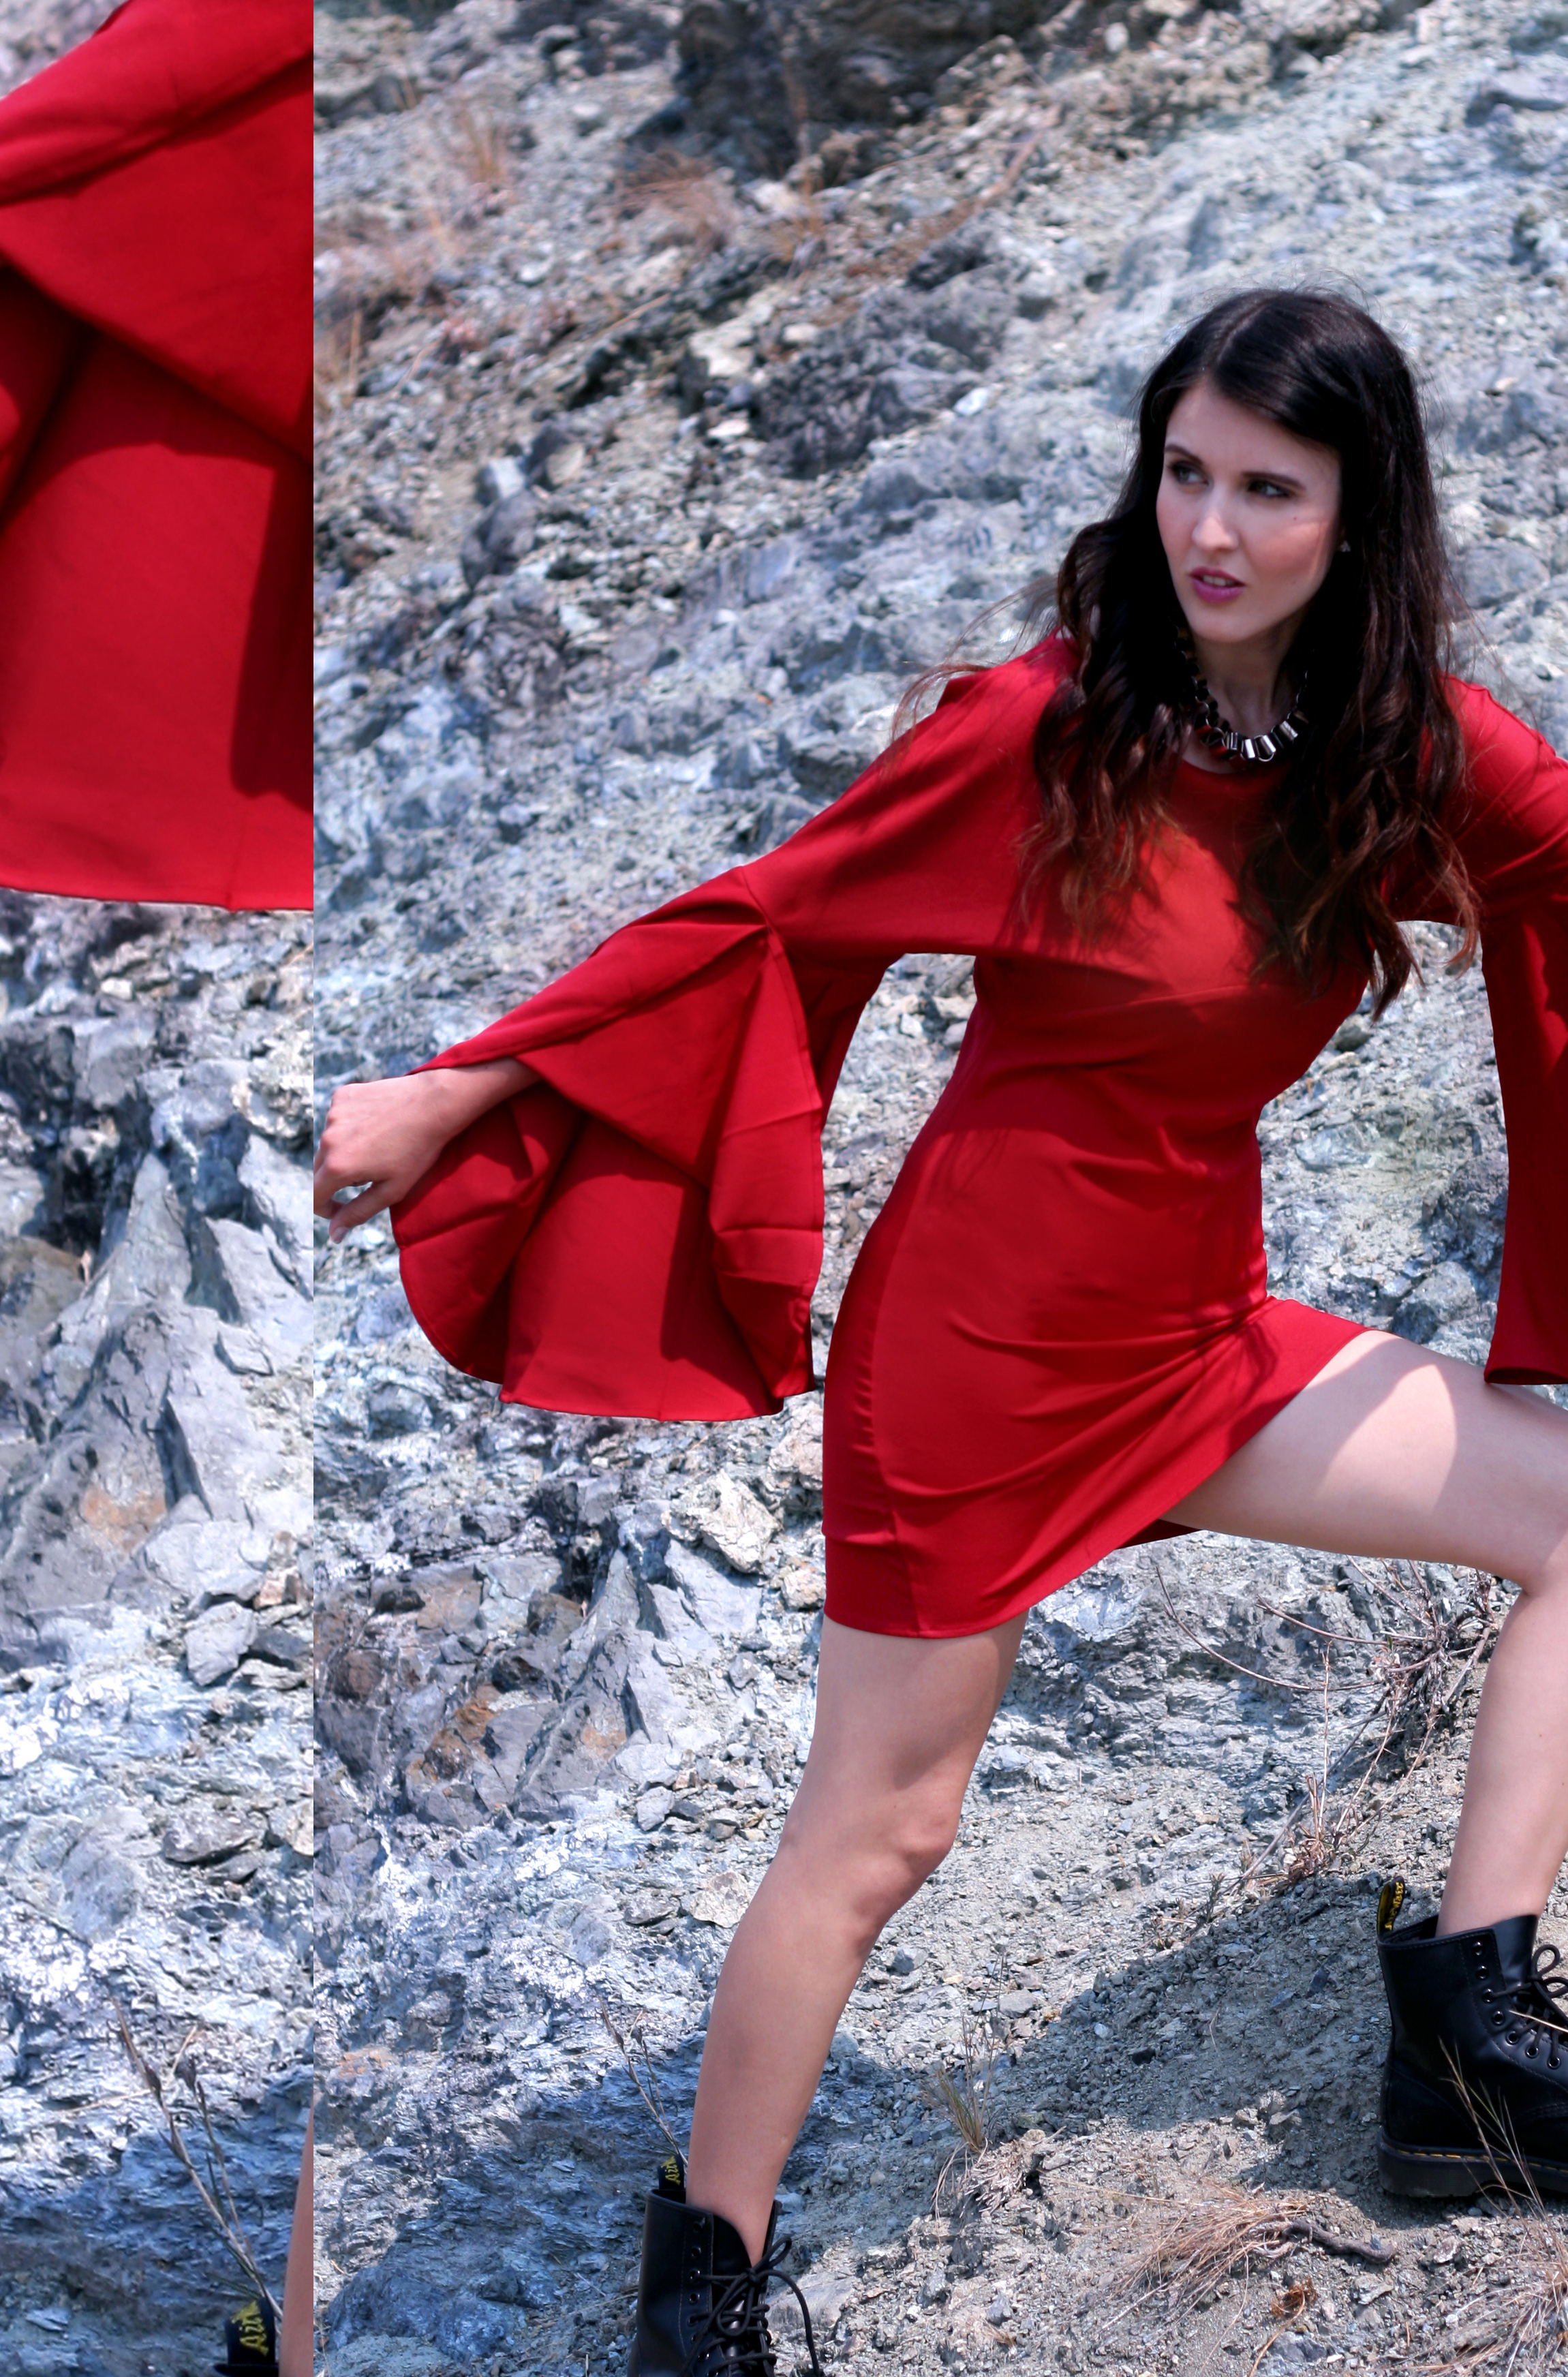 Red dress by magic 4 ur